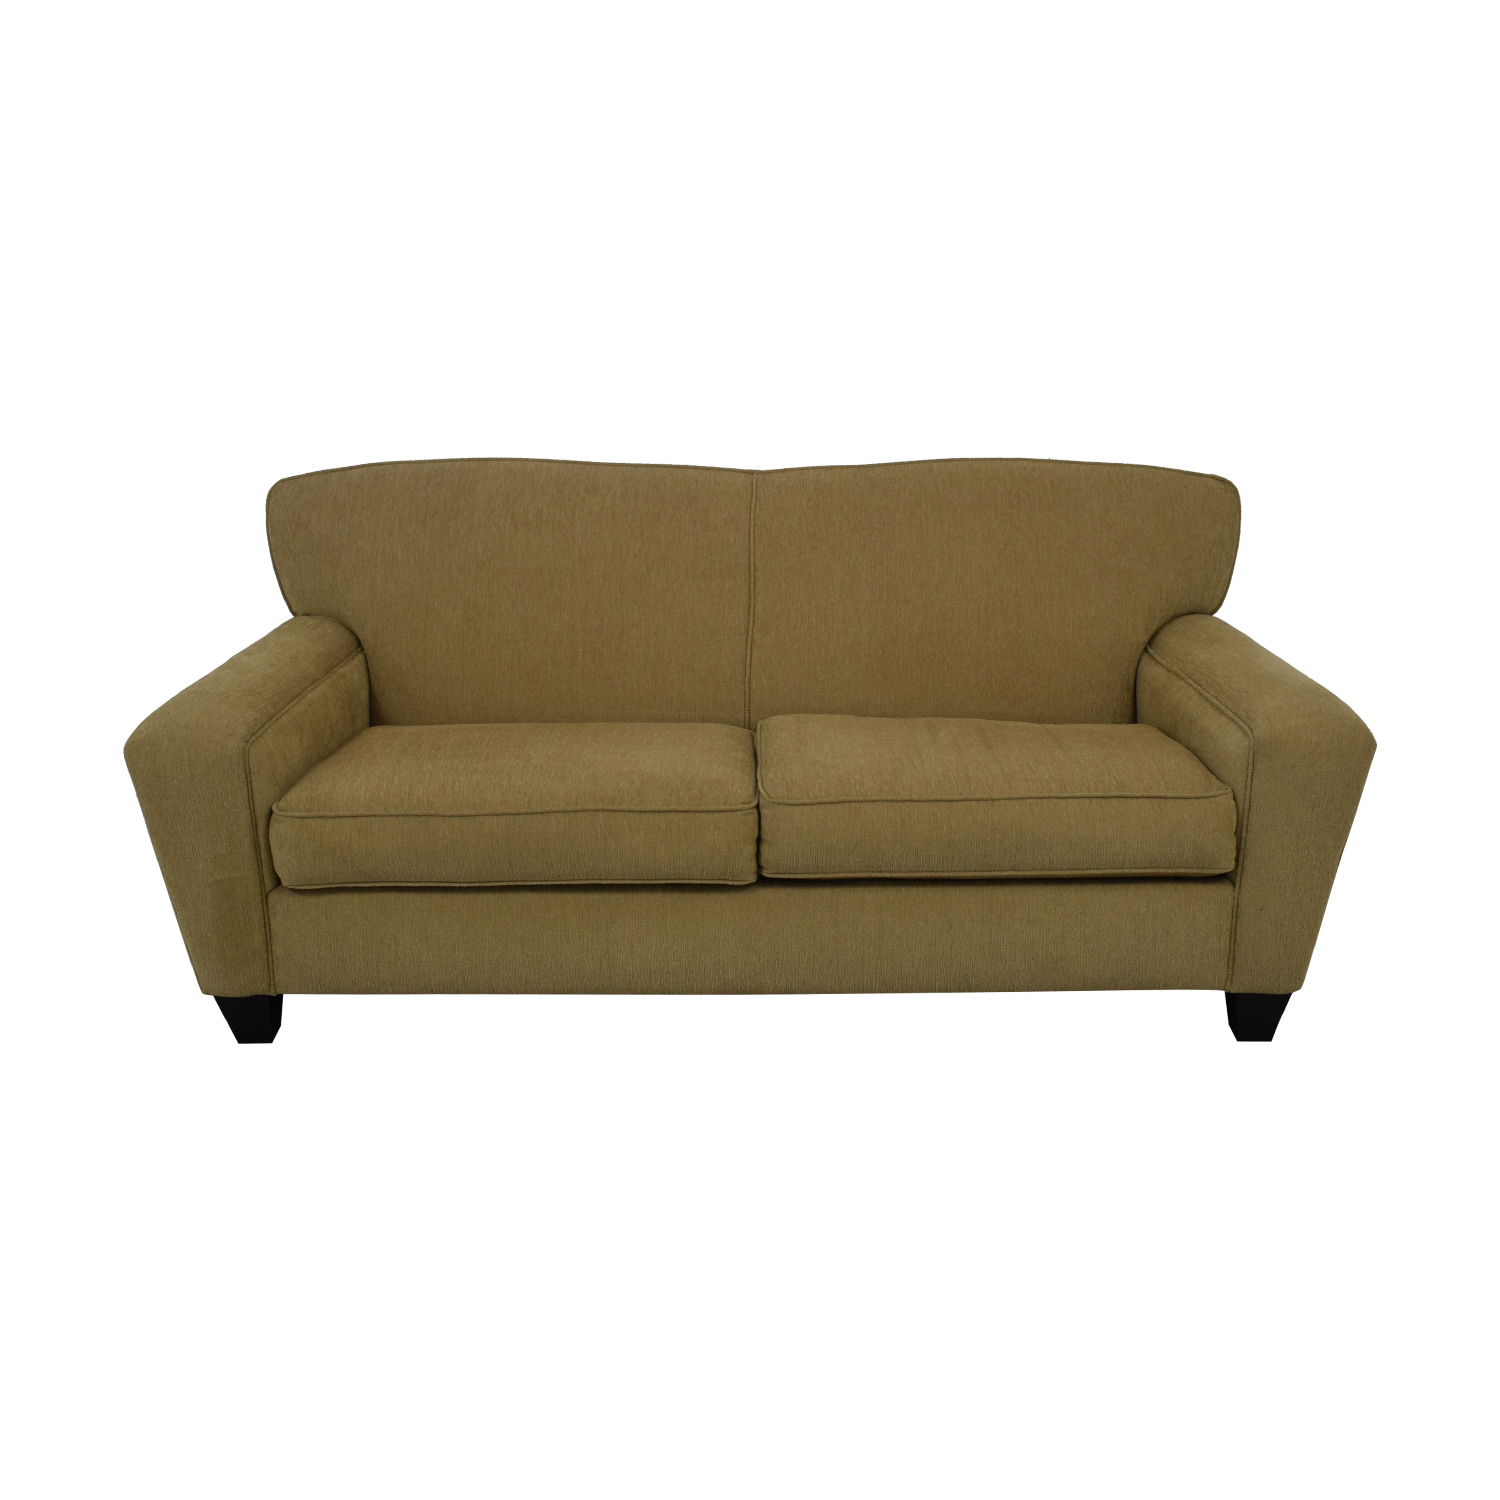 Storehouse Two Cushion Sofa sale